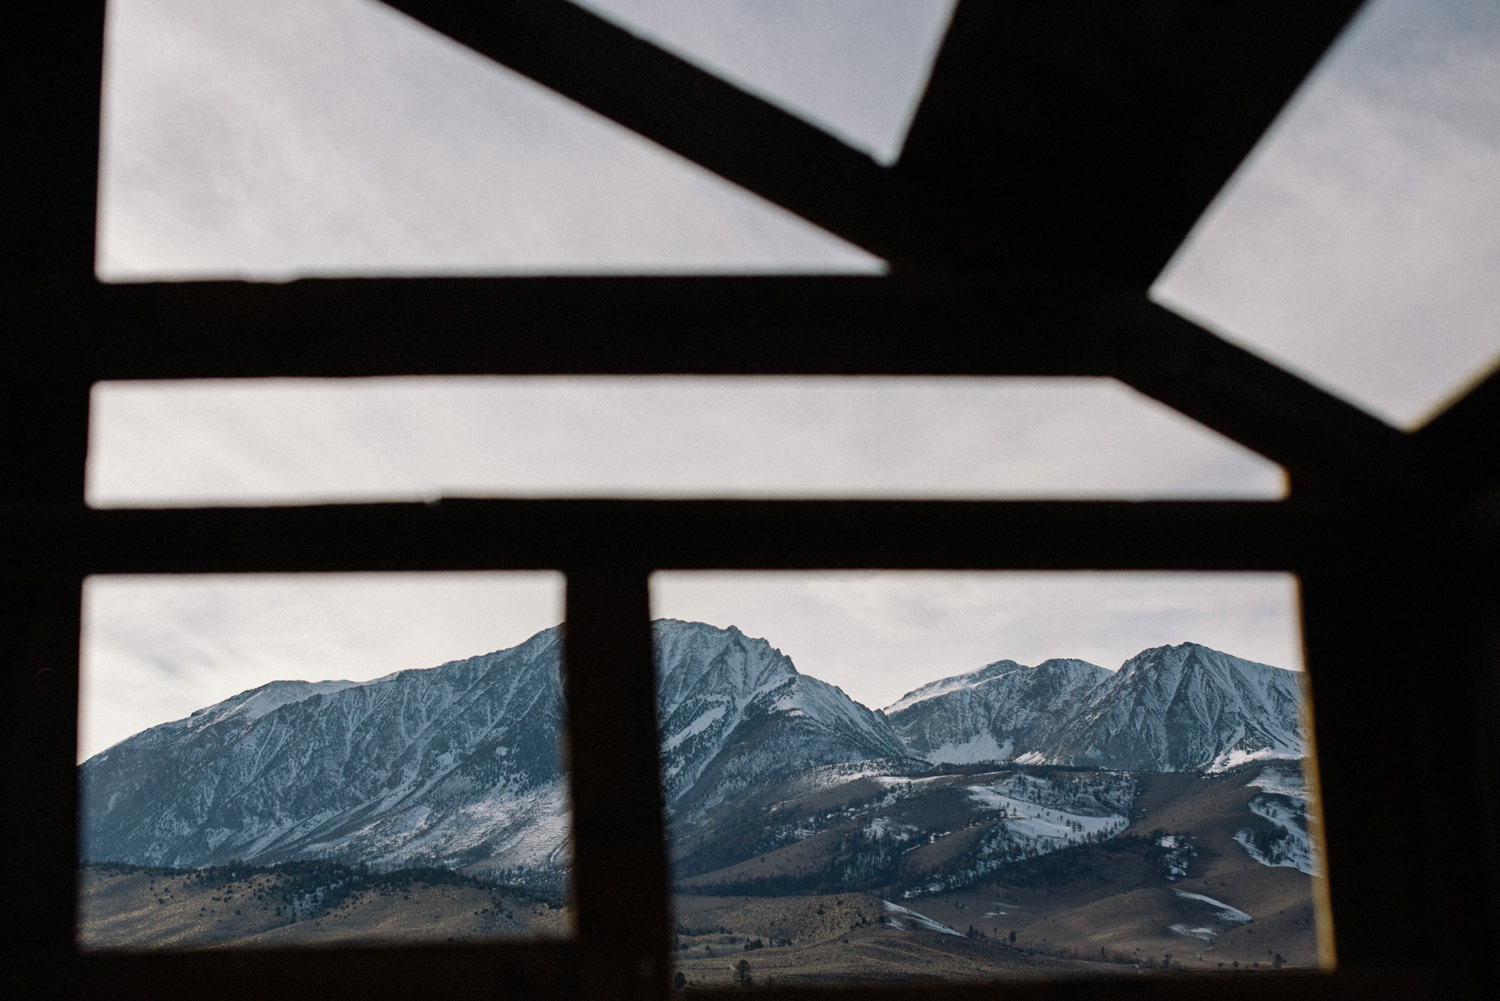 snowy mountains through cabin window